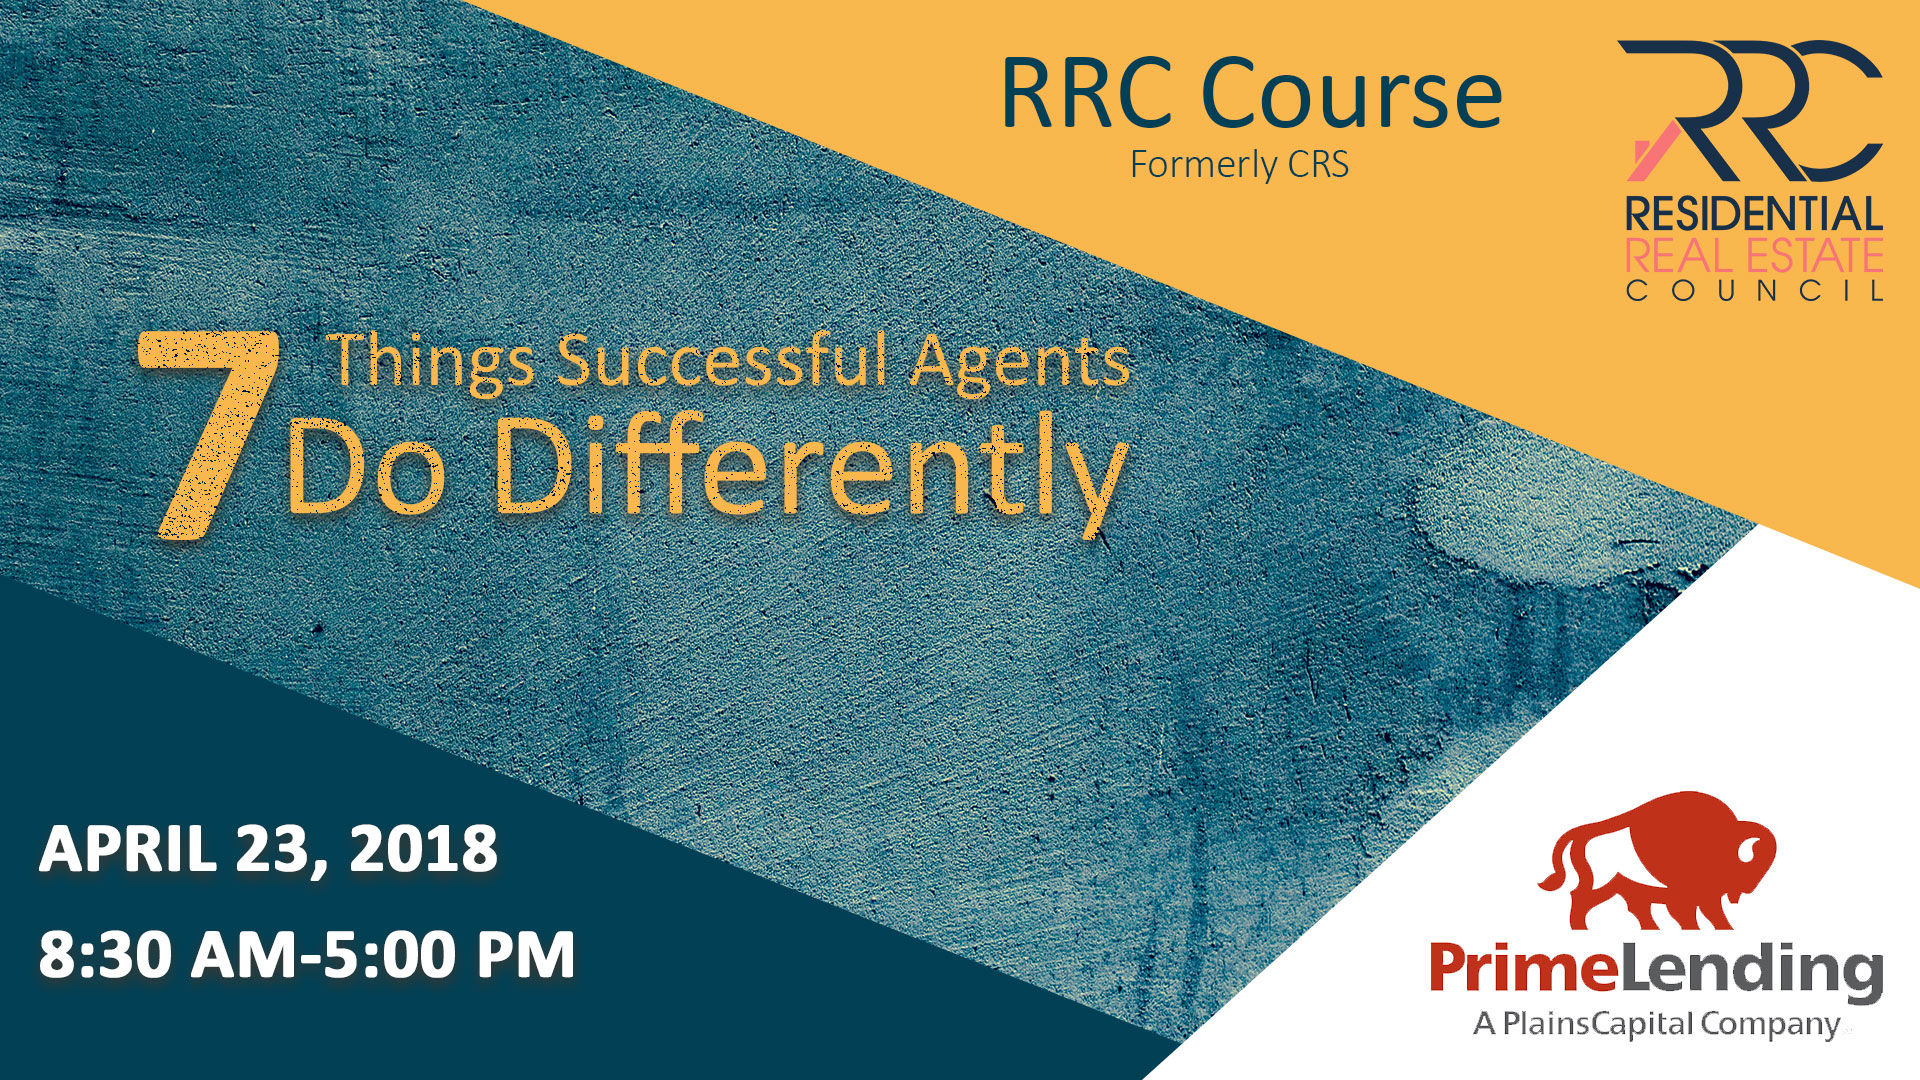 RRC Course: 7 Things Successful Agents Do Differently